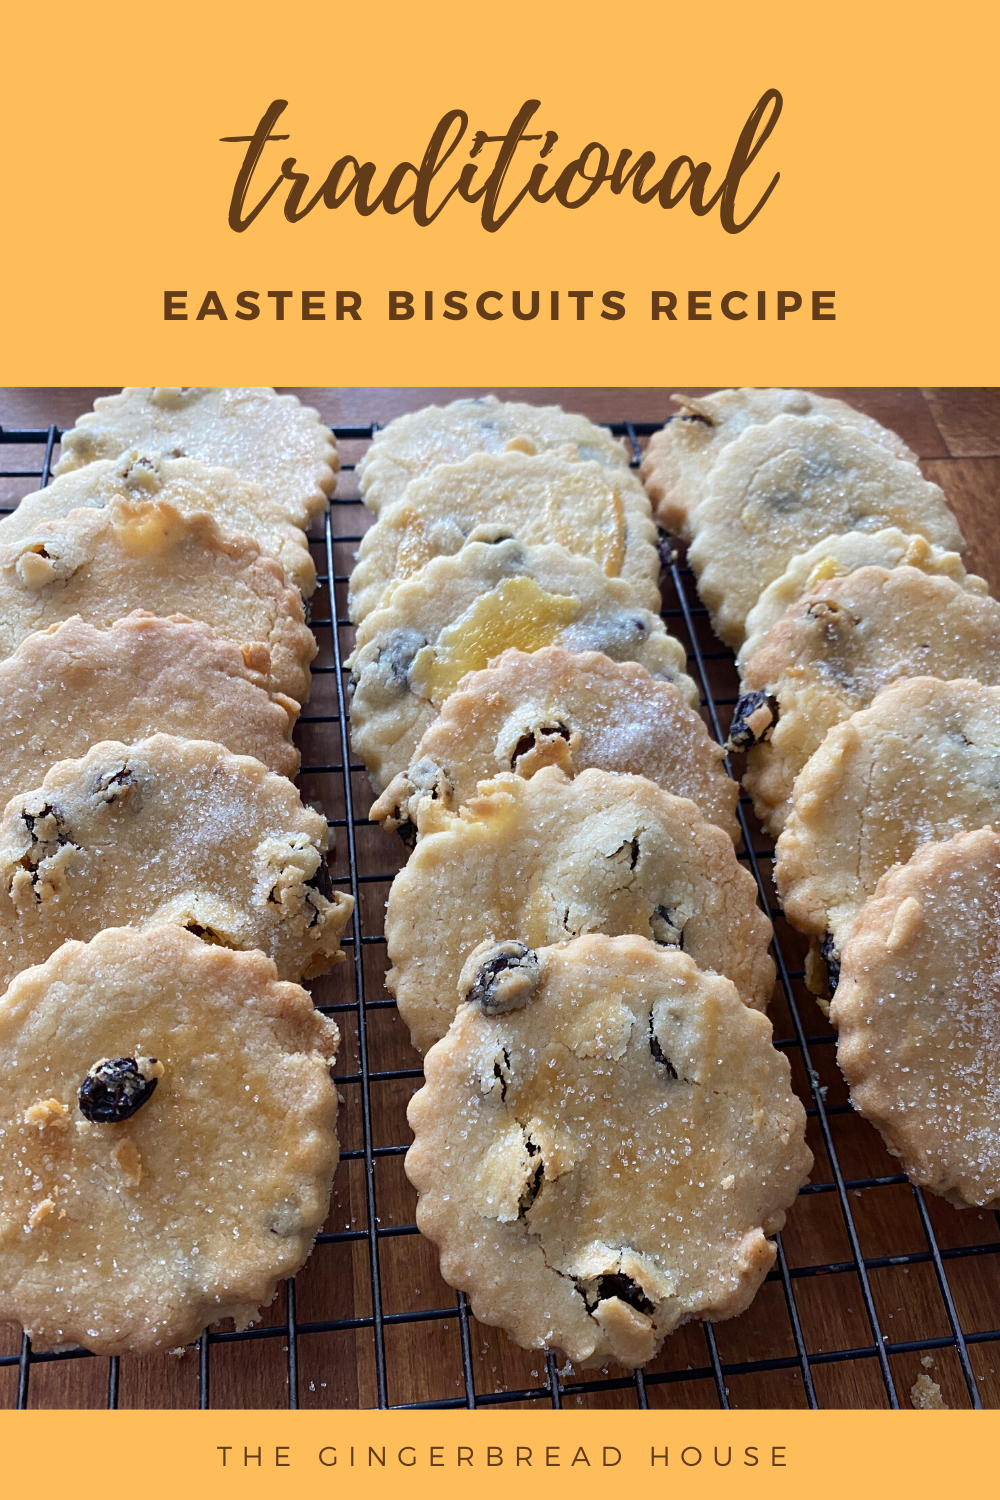 Traditional Easter biscuits recipe